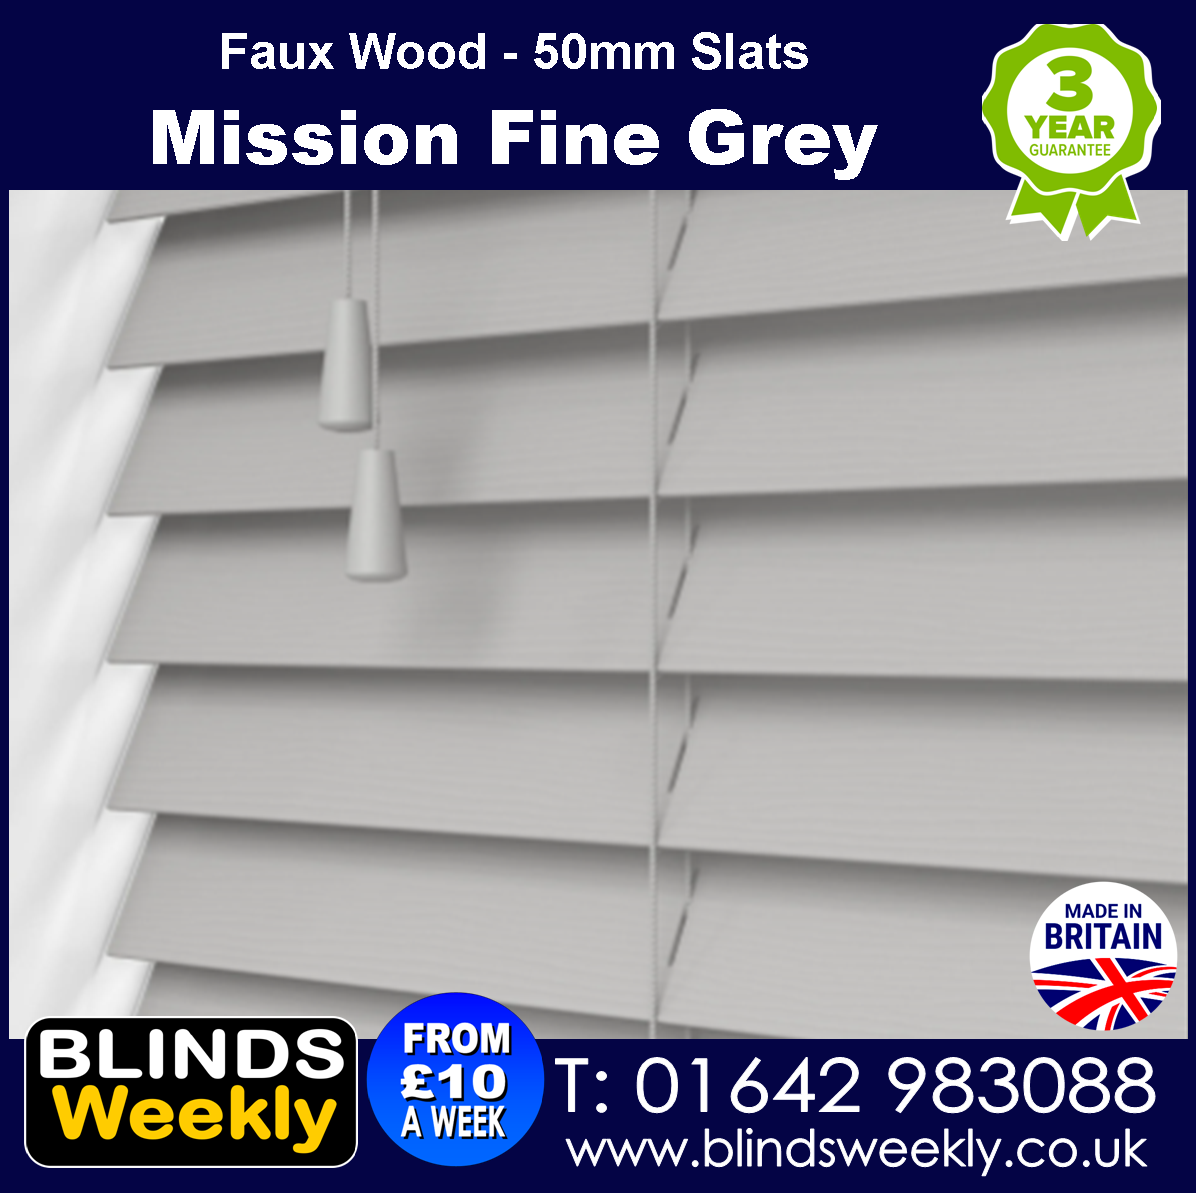 Mission Fine Grain Faux Wood Blinds 50mm Slats from Blinds Weekly